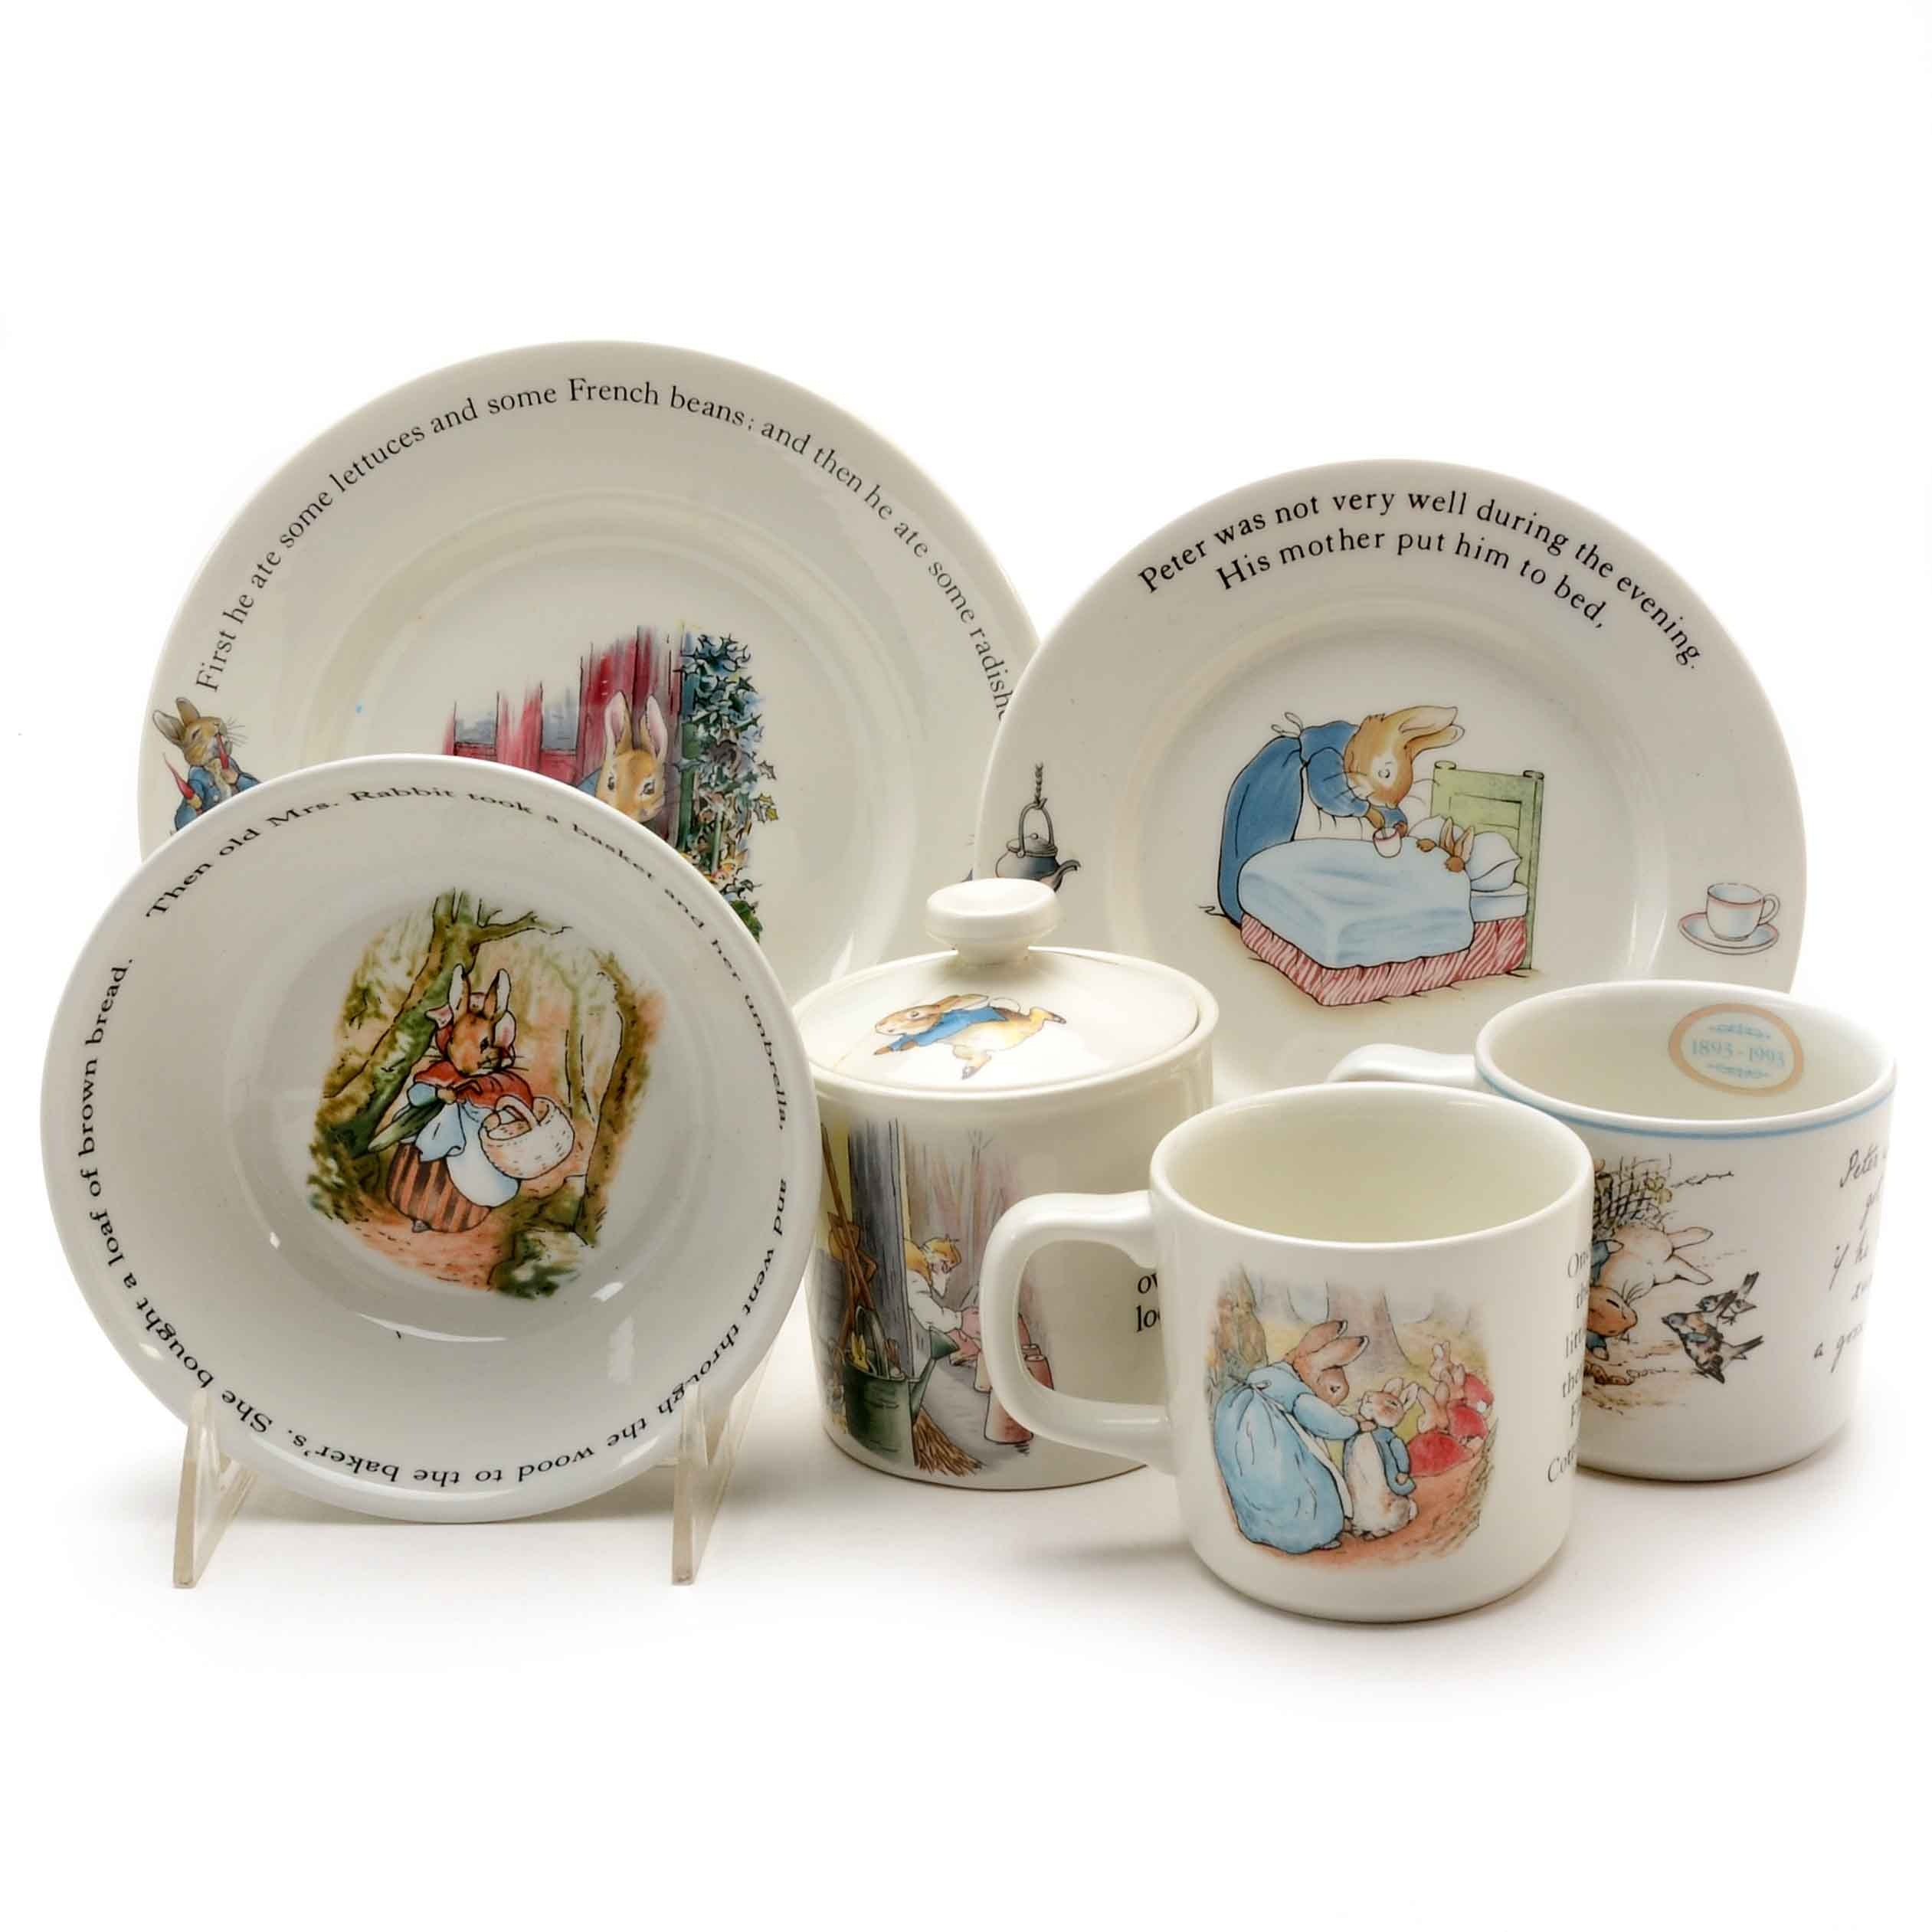 Collection of Beatrice Potter Peter Rabbit Dishes by Wedgwood ...  sc 1 st  EBTH.com & Collection of Beatrice Potter Peter Rabbit Dishes by Wedgwood : EBTH